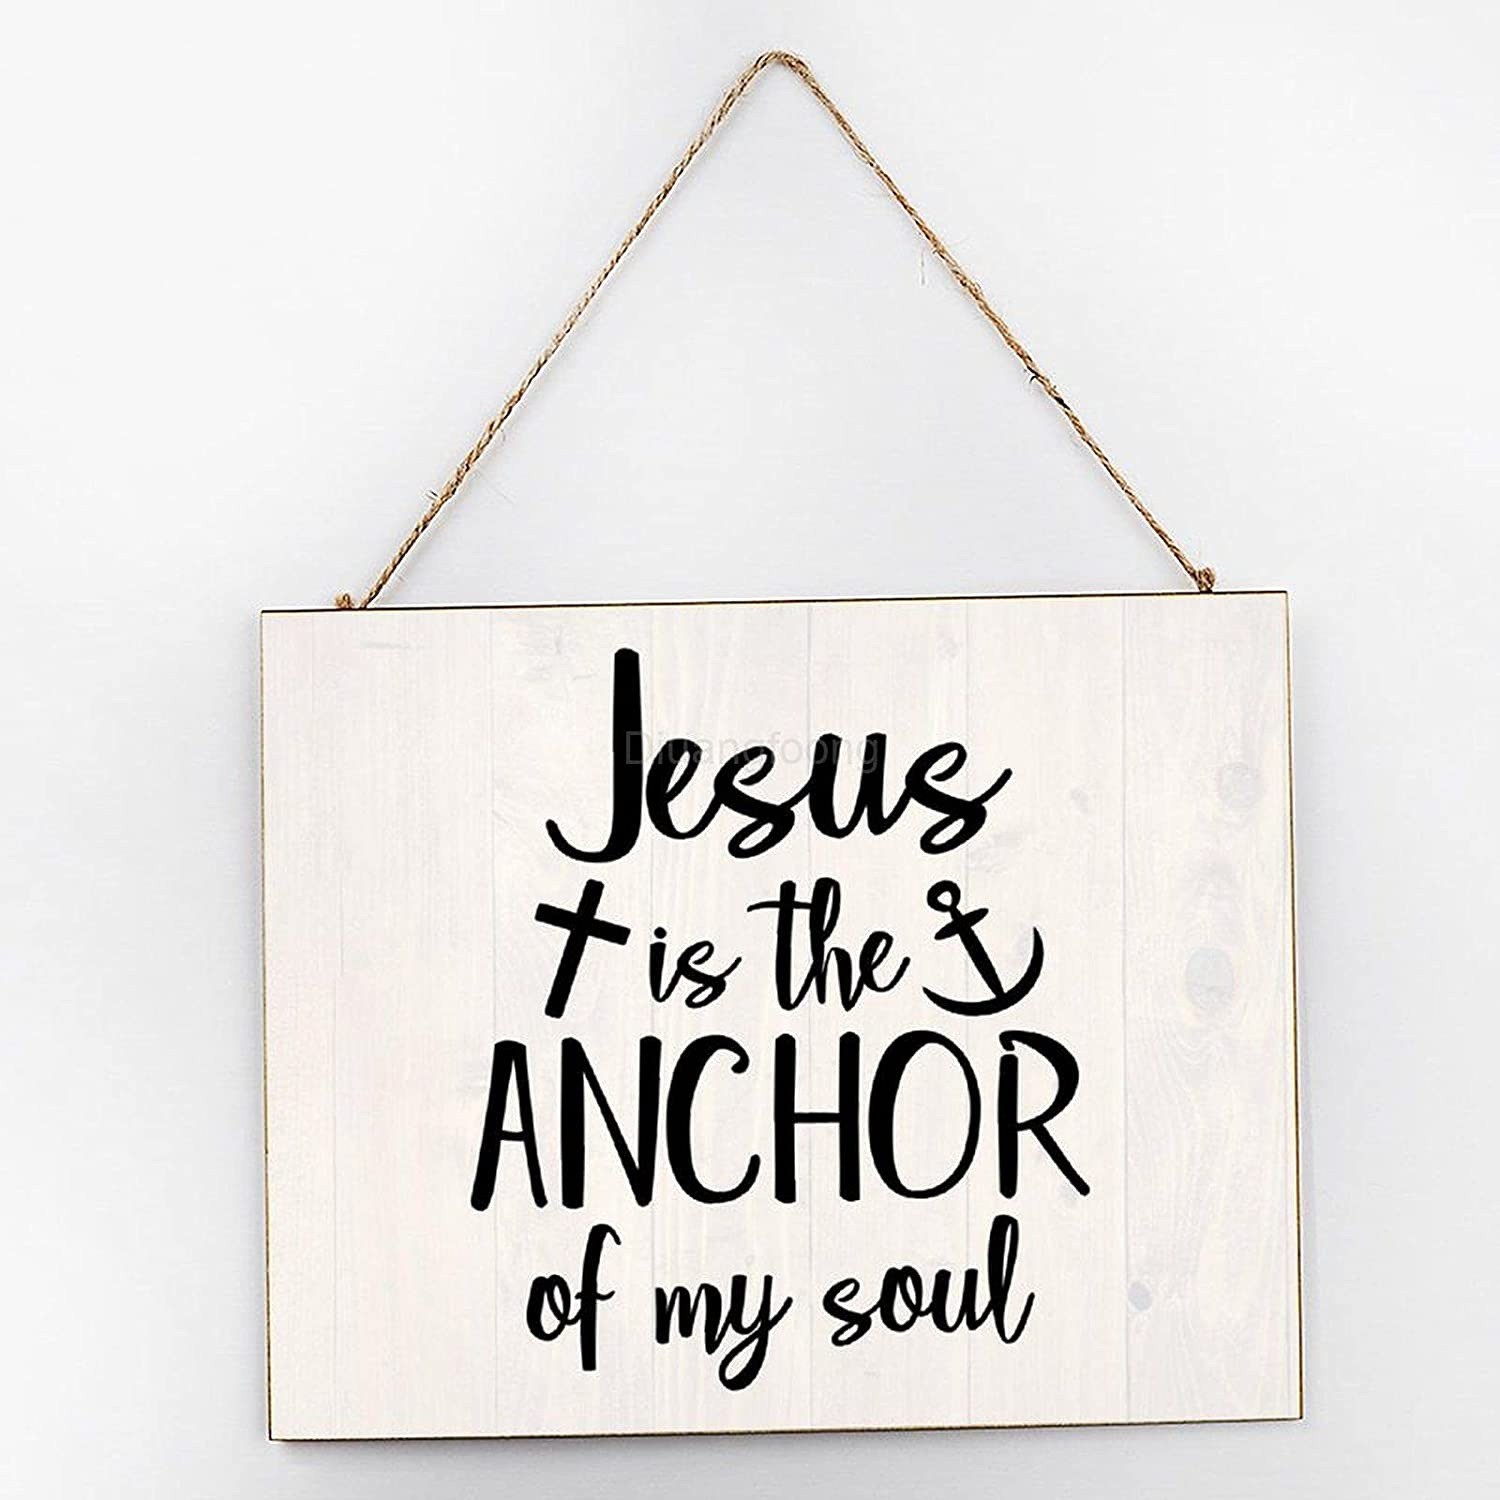 Diuangfoong The Anchor of My Soul Sign Inspirational Wall Art, Inspirational Signage, Wooden Signs for Home Decor Kitchen Bathroom, Wooden Frame Wall Hanging Sign 10x12x0.2 Inch